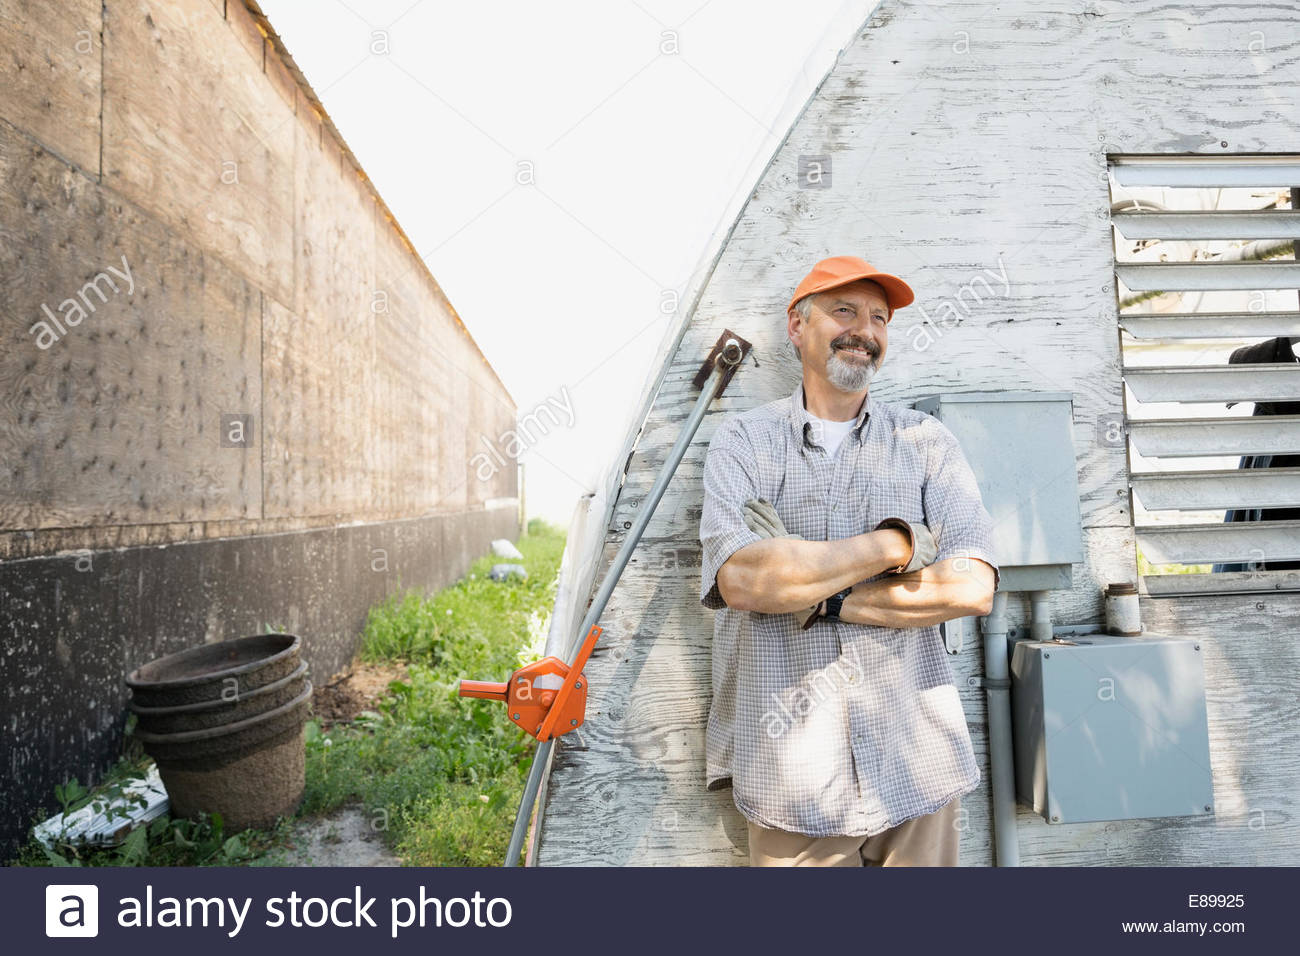 Smiling worker outside greenhouse - Stock Image